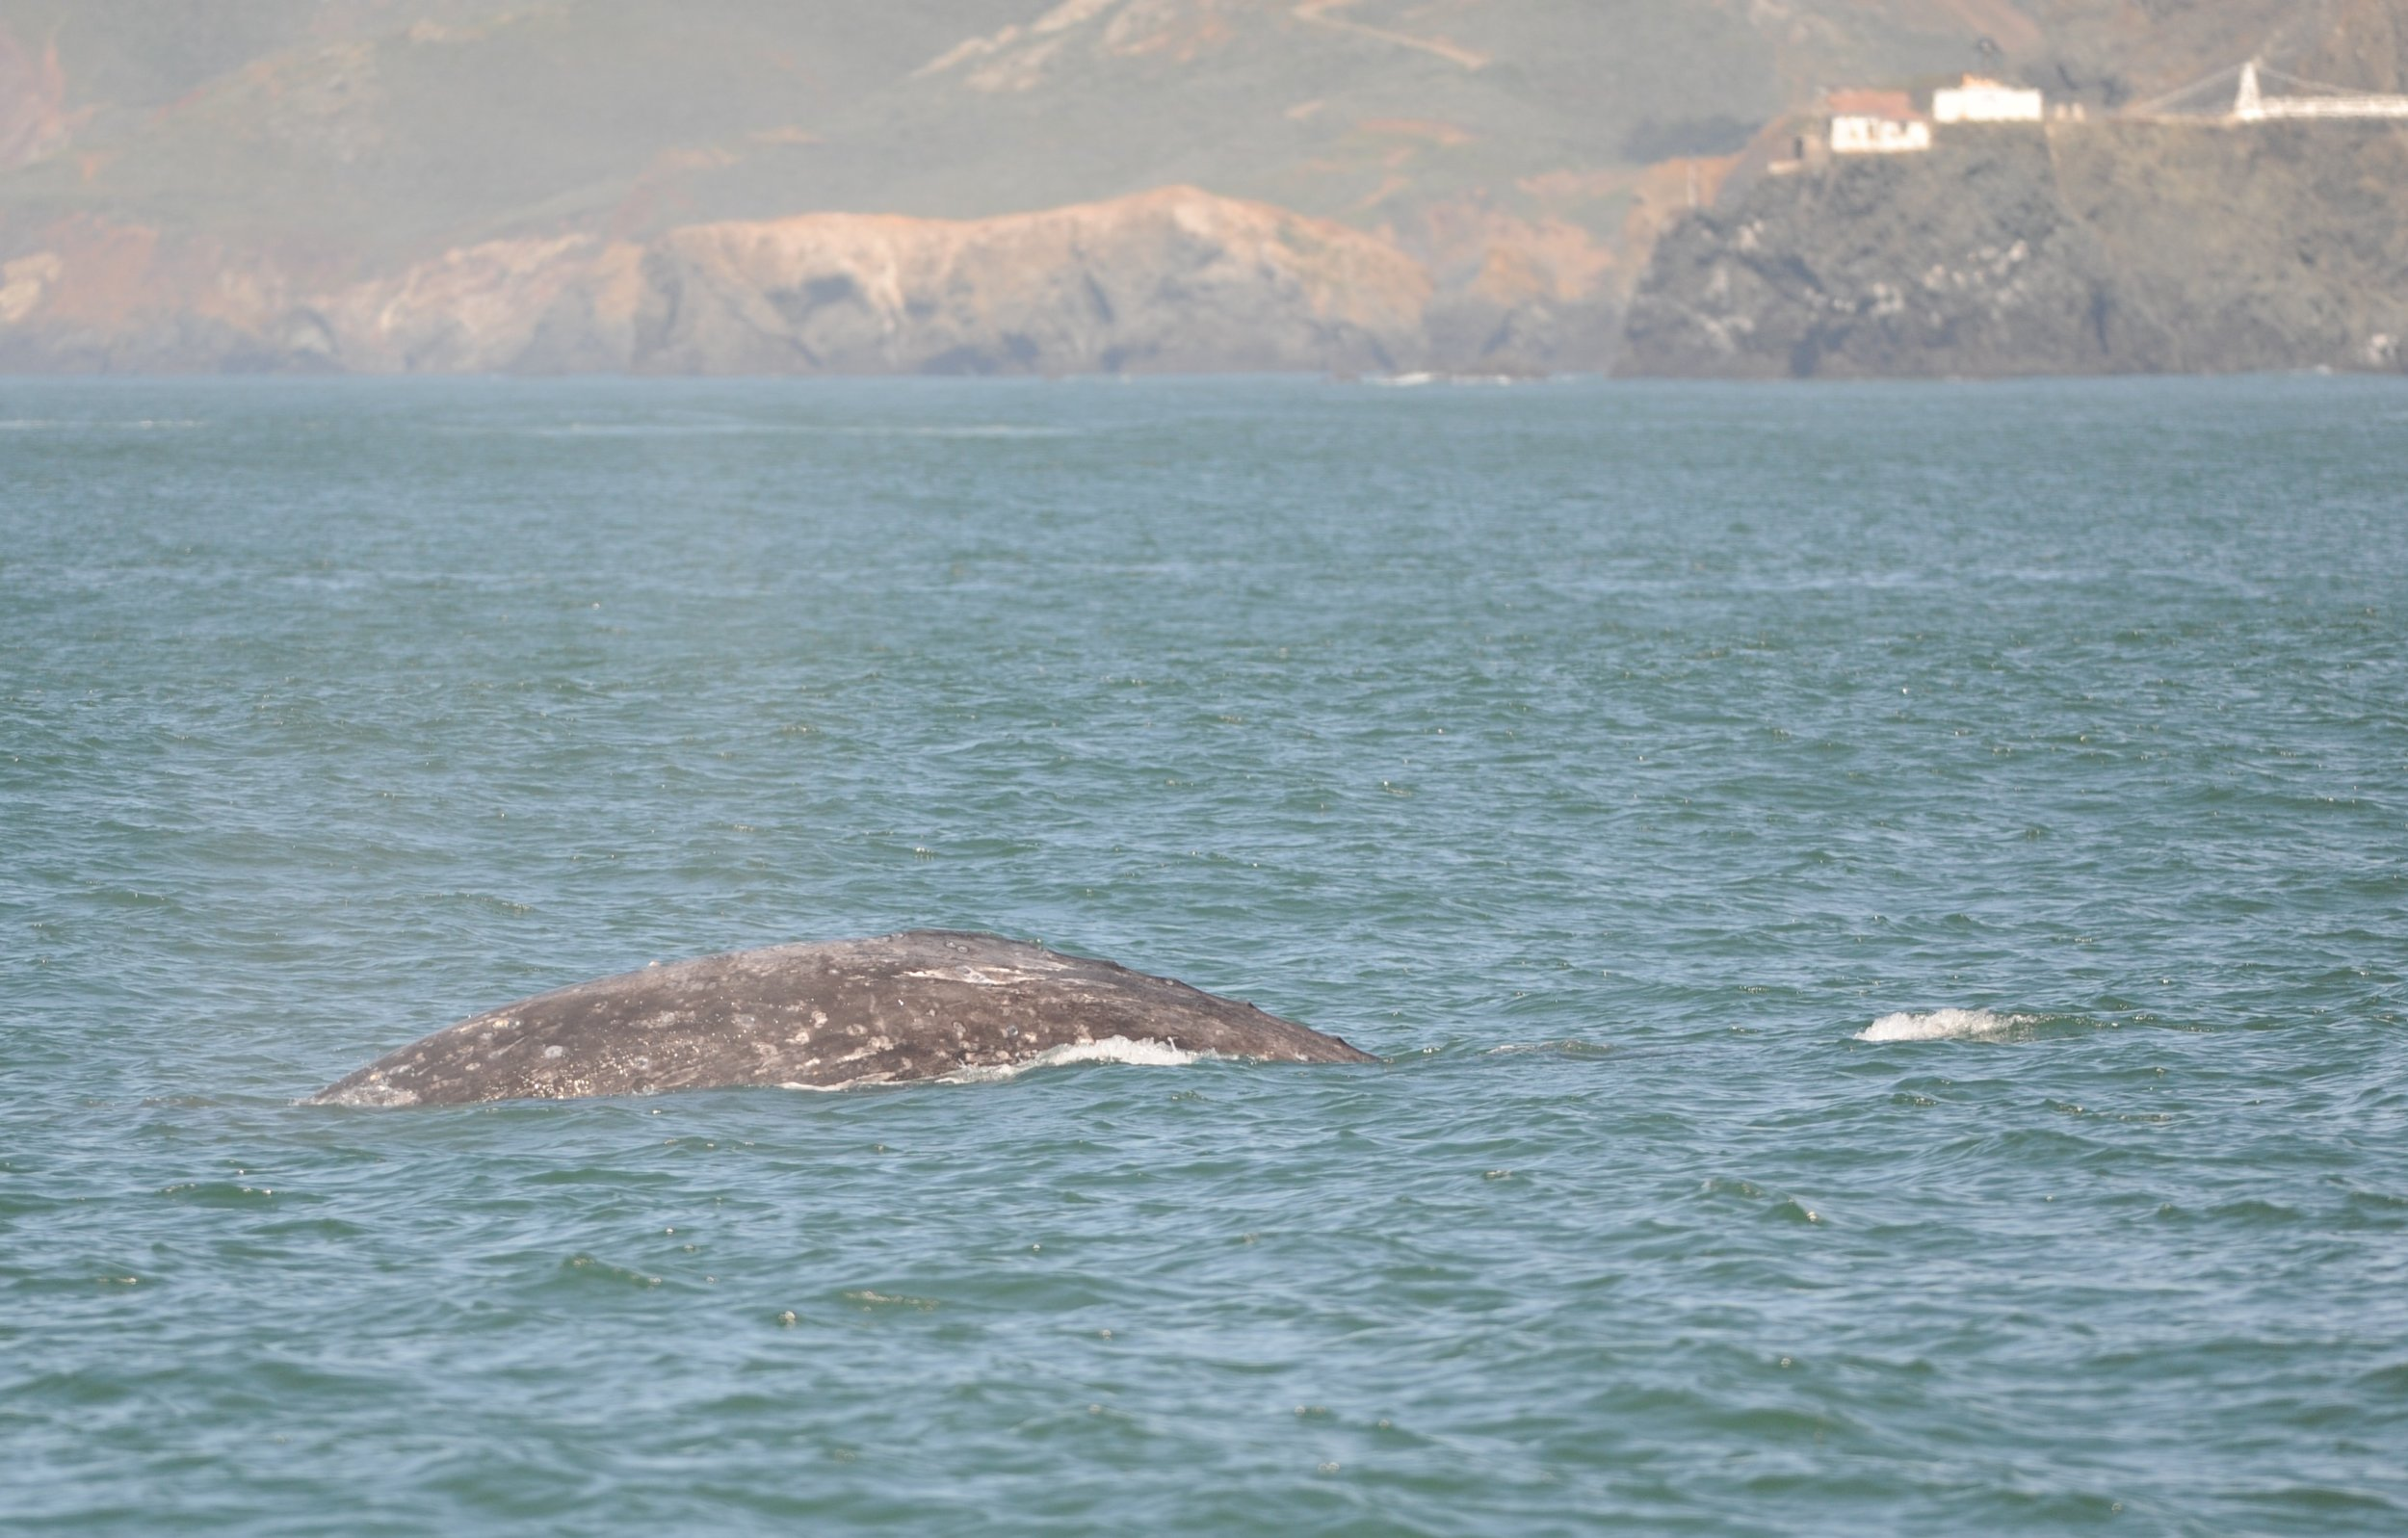 A gray whale with Point Bonita in the background.